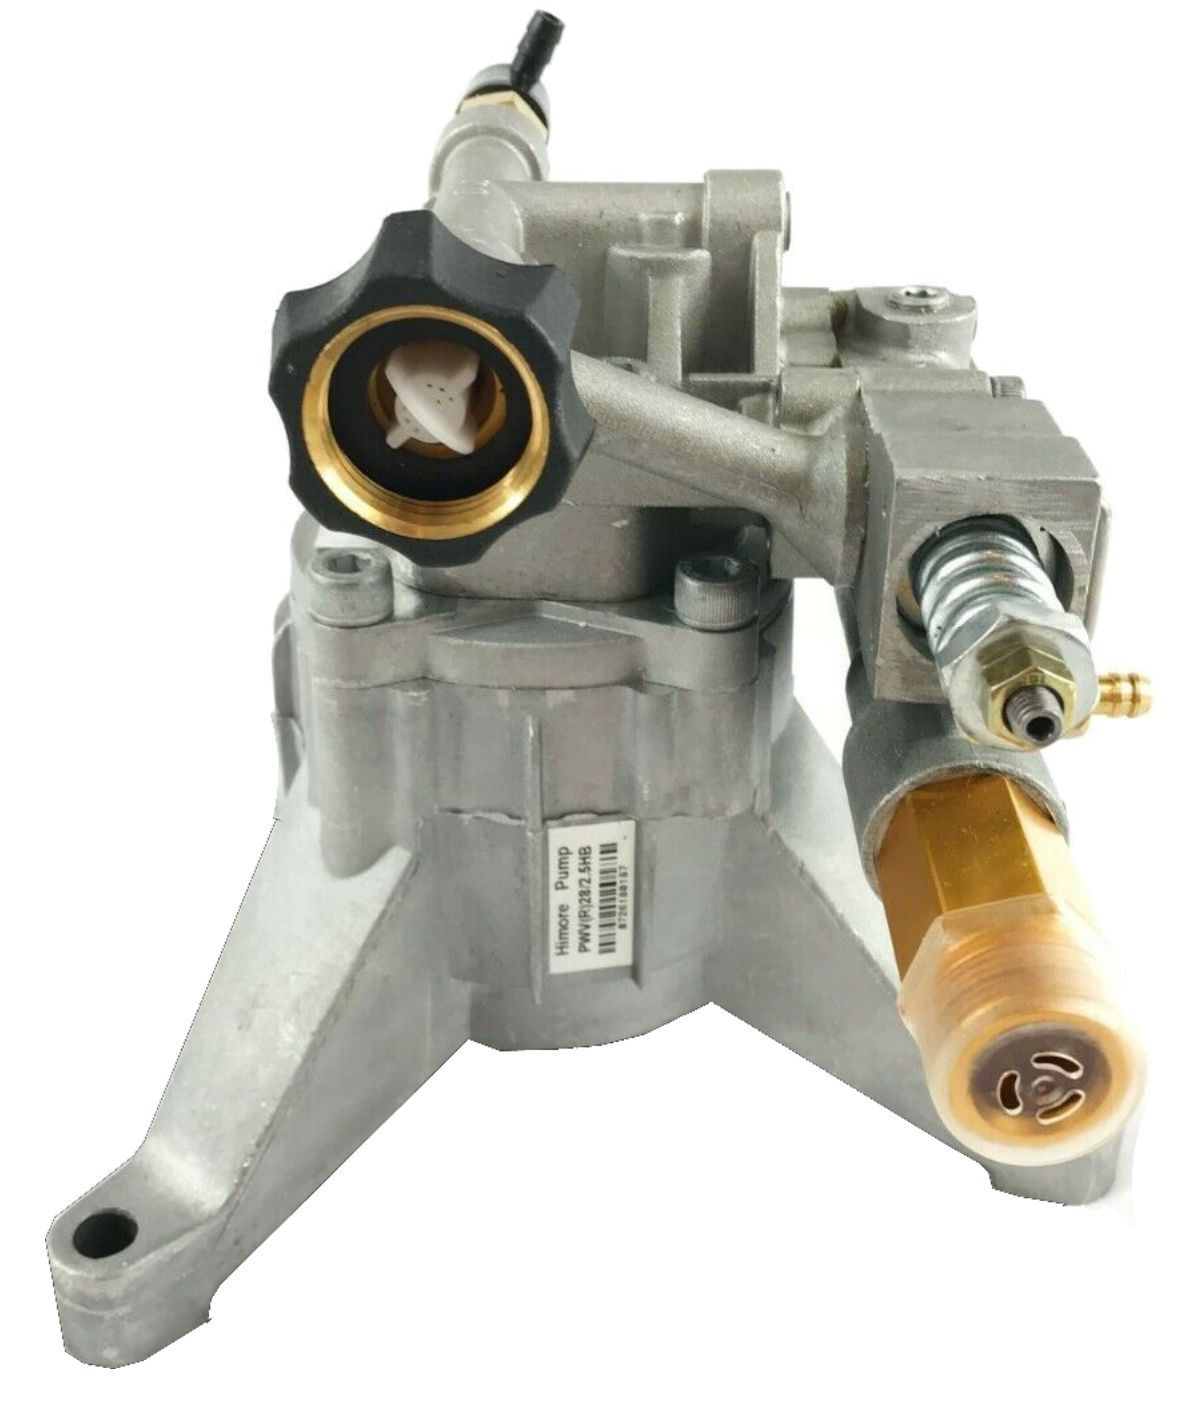 2700 PSI PRESSURE WASHER WATER PUMP Westinghouse WP2700 WP2800